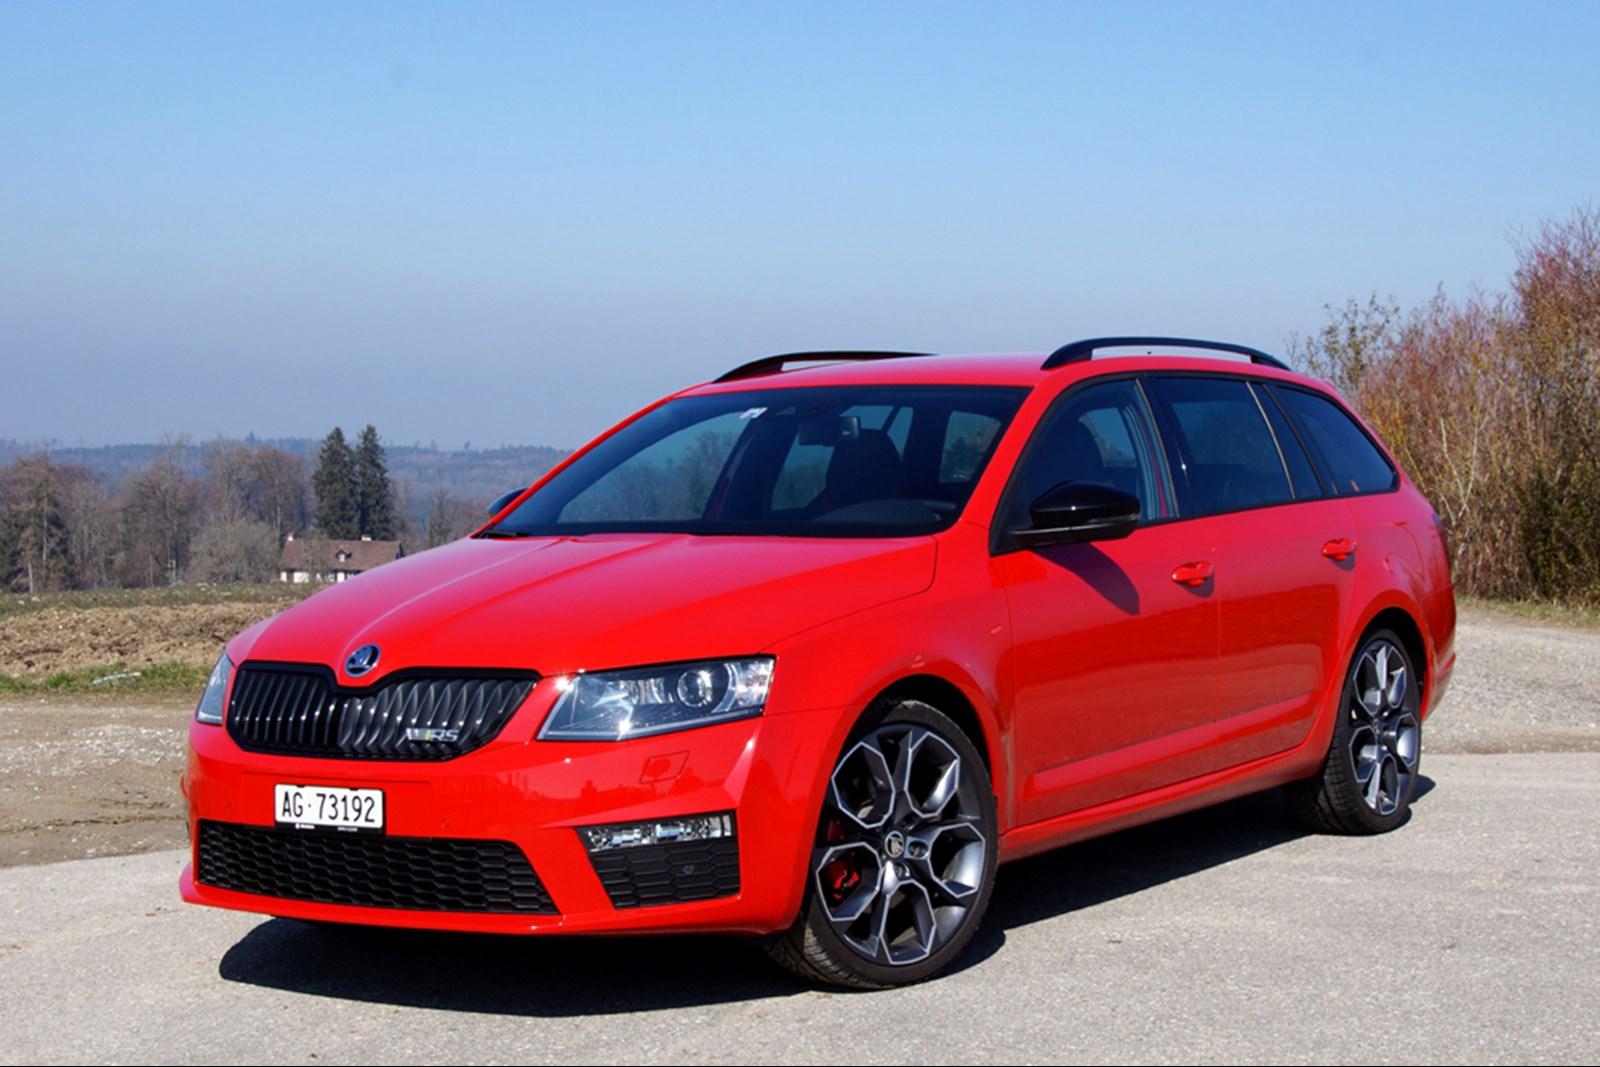 skoda octavia skoda octavia combi rs tdi 4x4 2016 im test. Black Bedroom Furniture Sets. Home Design Ideas